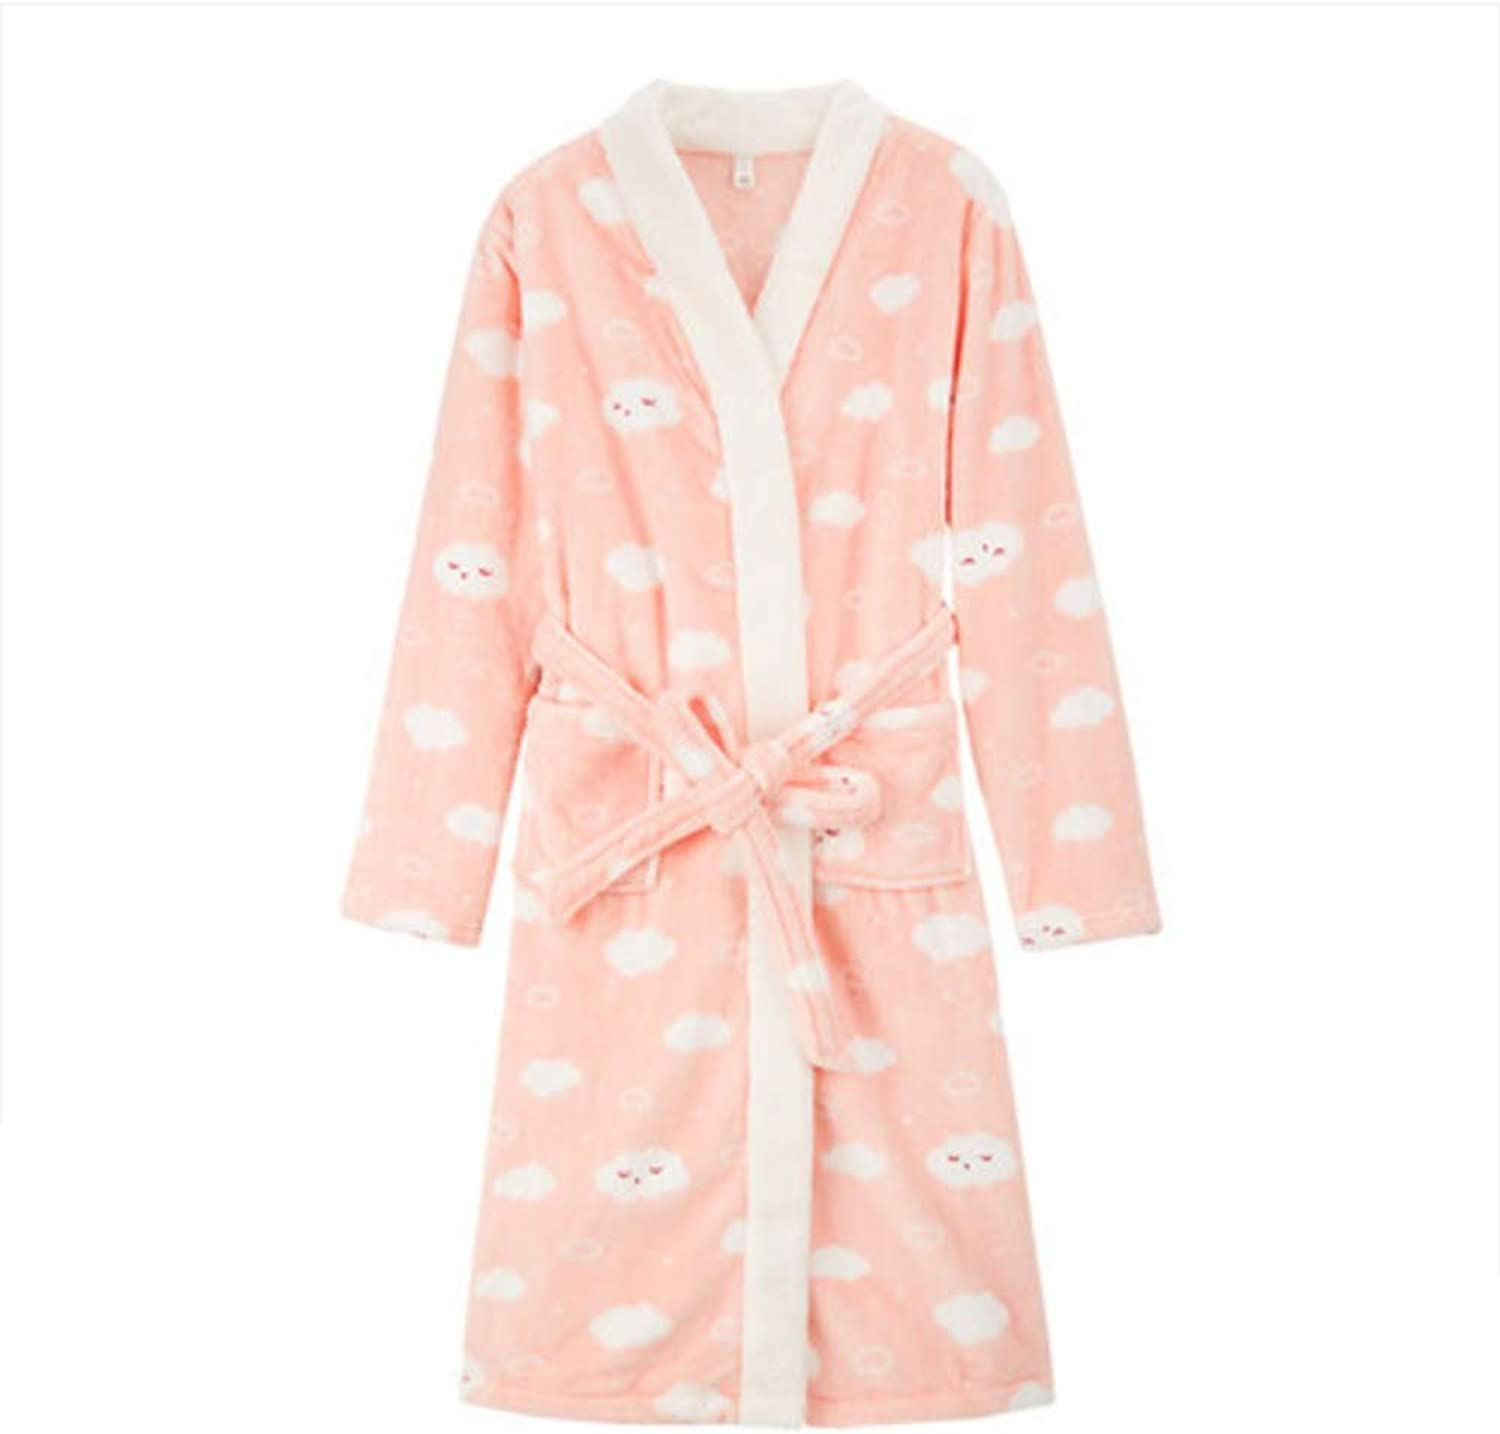 NAN Liang Women's Autumn and Winter Pajamas, Long Night Gowns, Thick and Simple Home Clothes to Keep Warm and Comfortable Soft (Size   M)